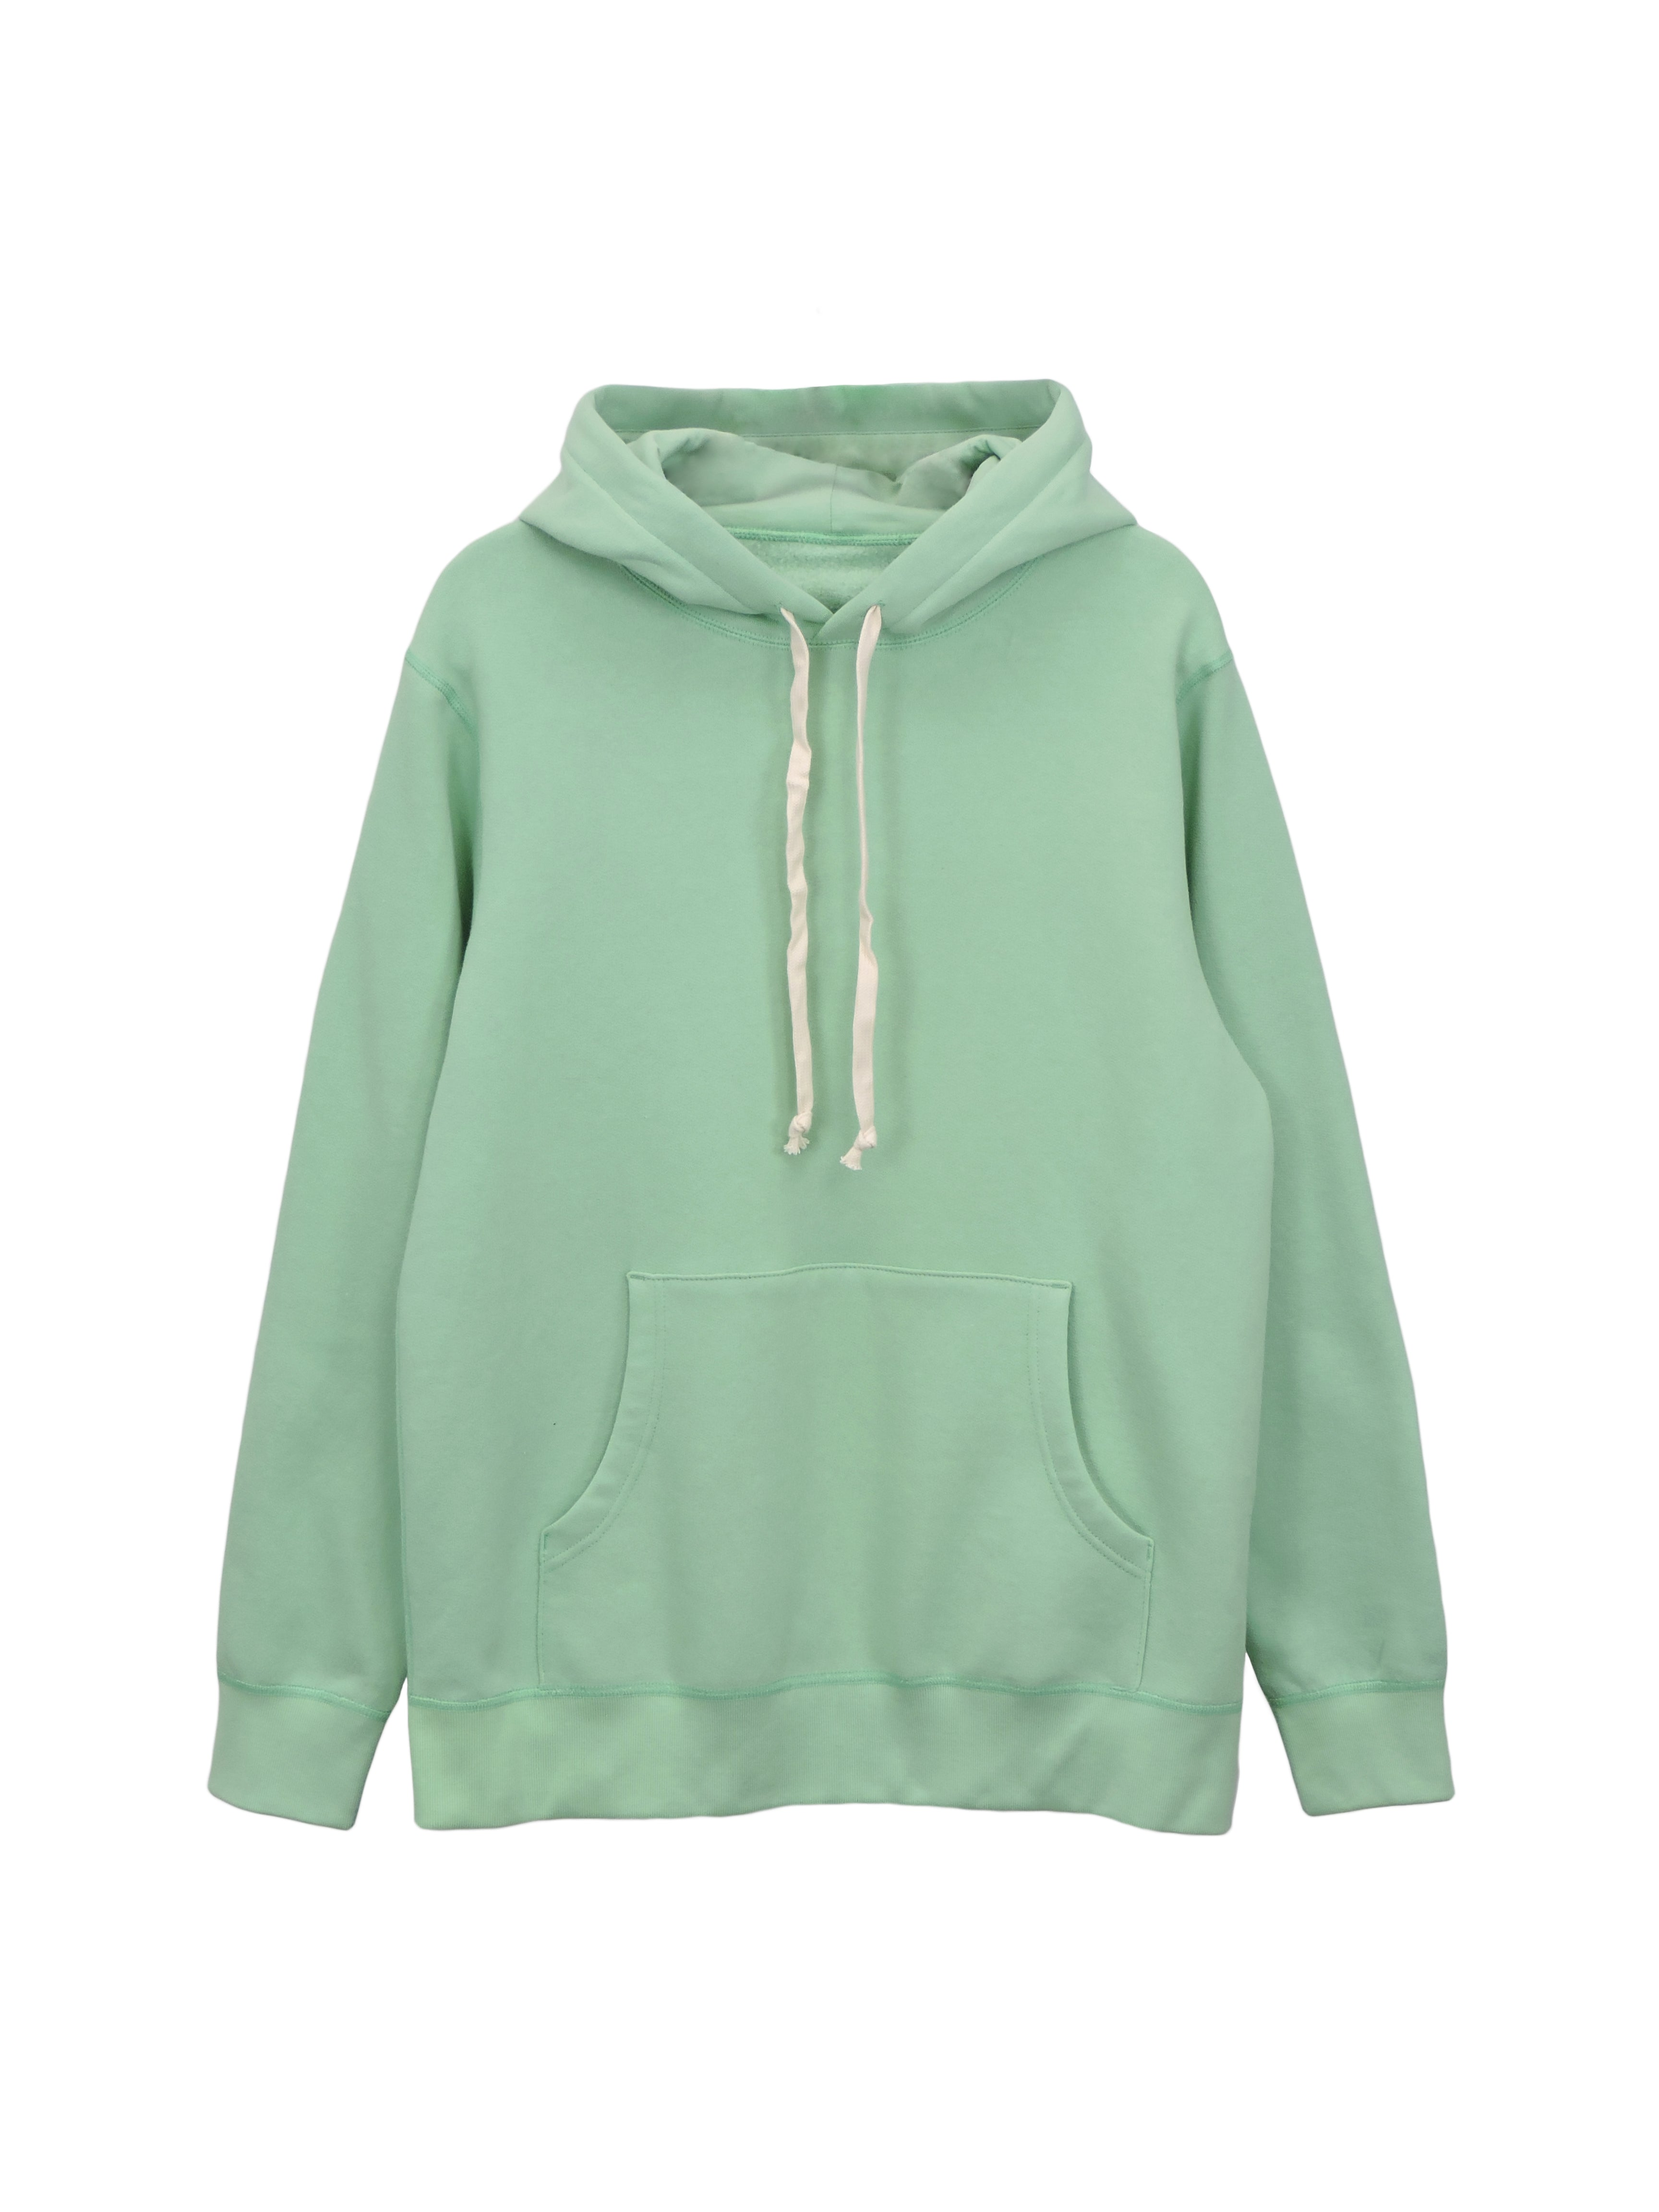 Mint Green Fleece - MAIN HOODIE